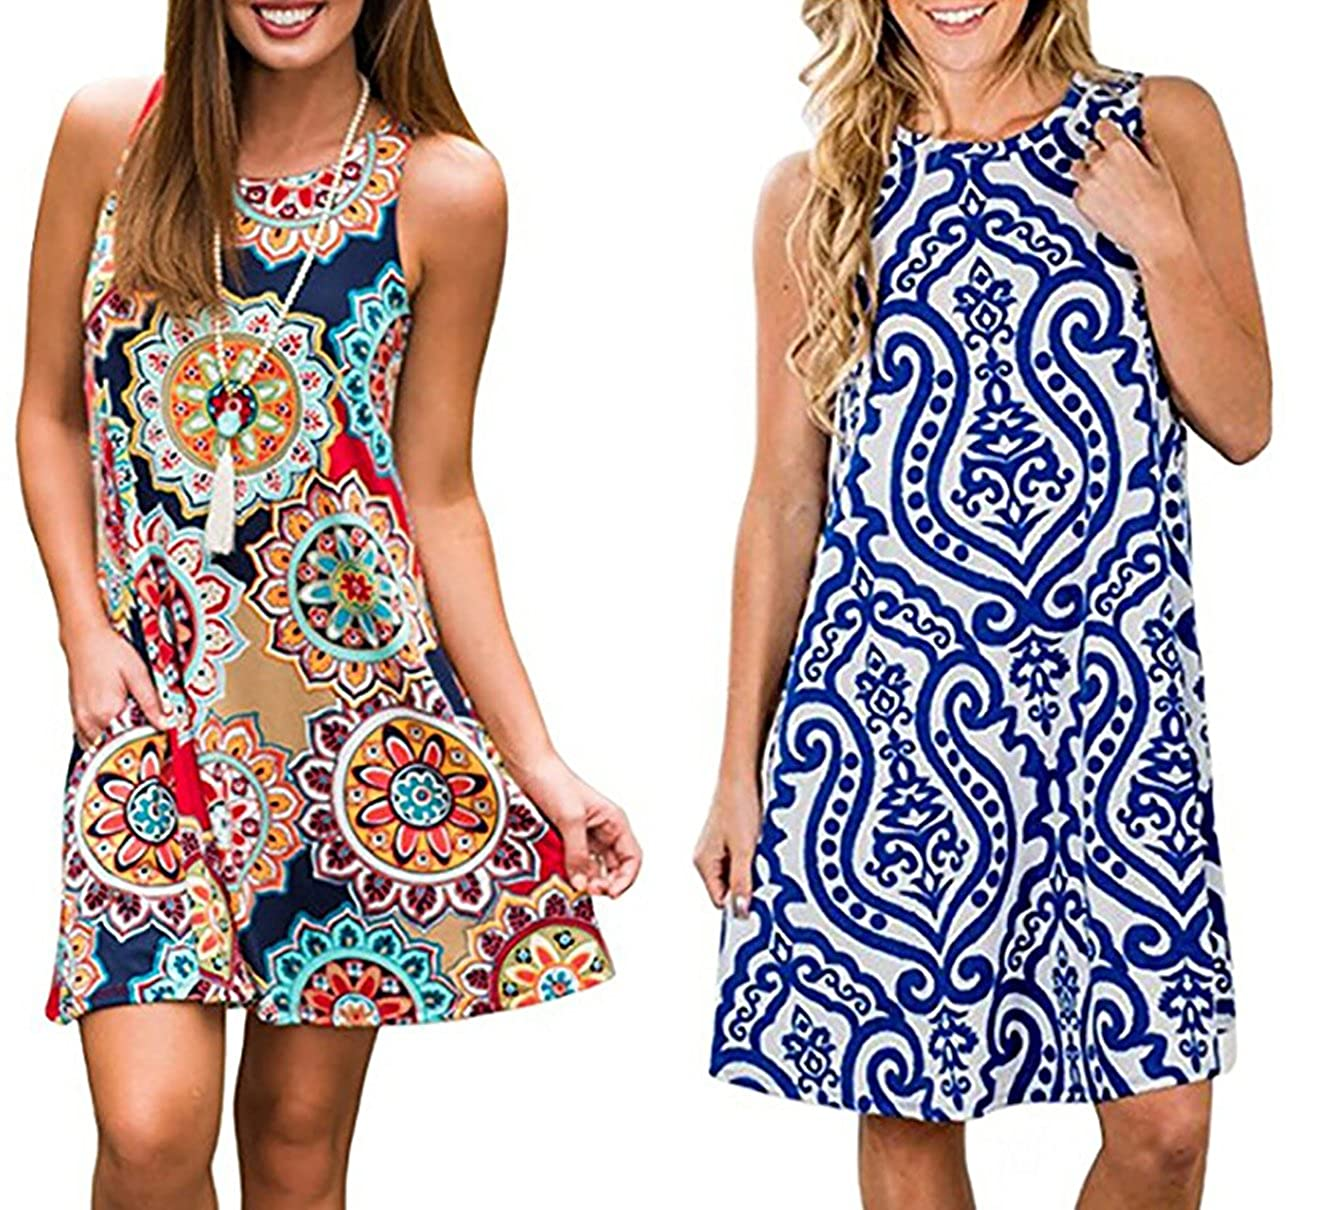 a665dbc5643aef YeeATZ Women s Summer Casual Sleeveless Floral Printed Swing Dress Sundress  with Pockets at Amazon Women s Clothing store